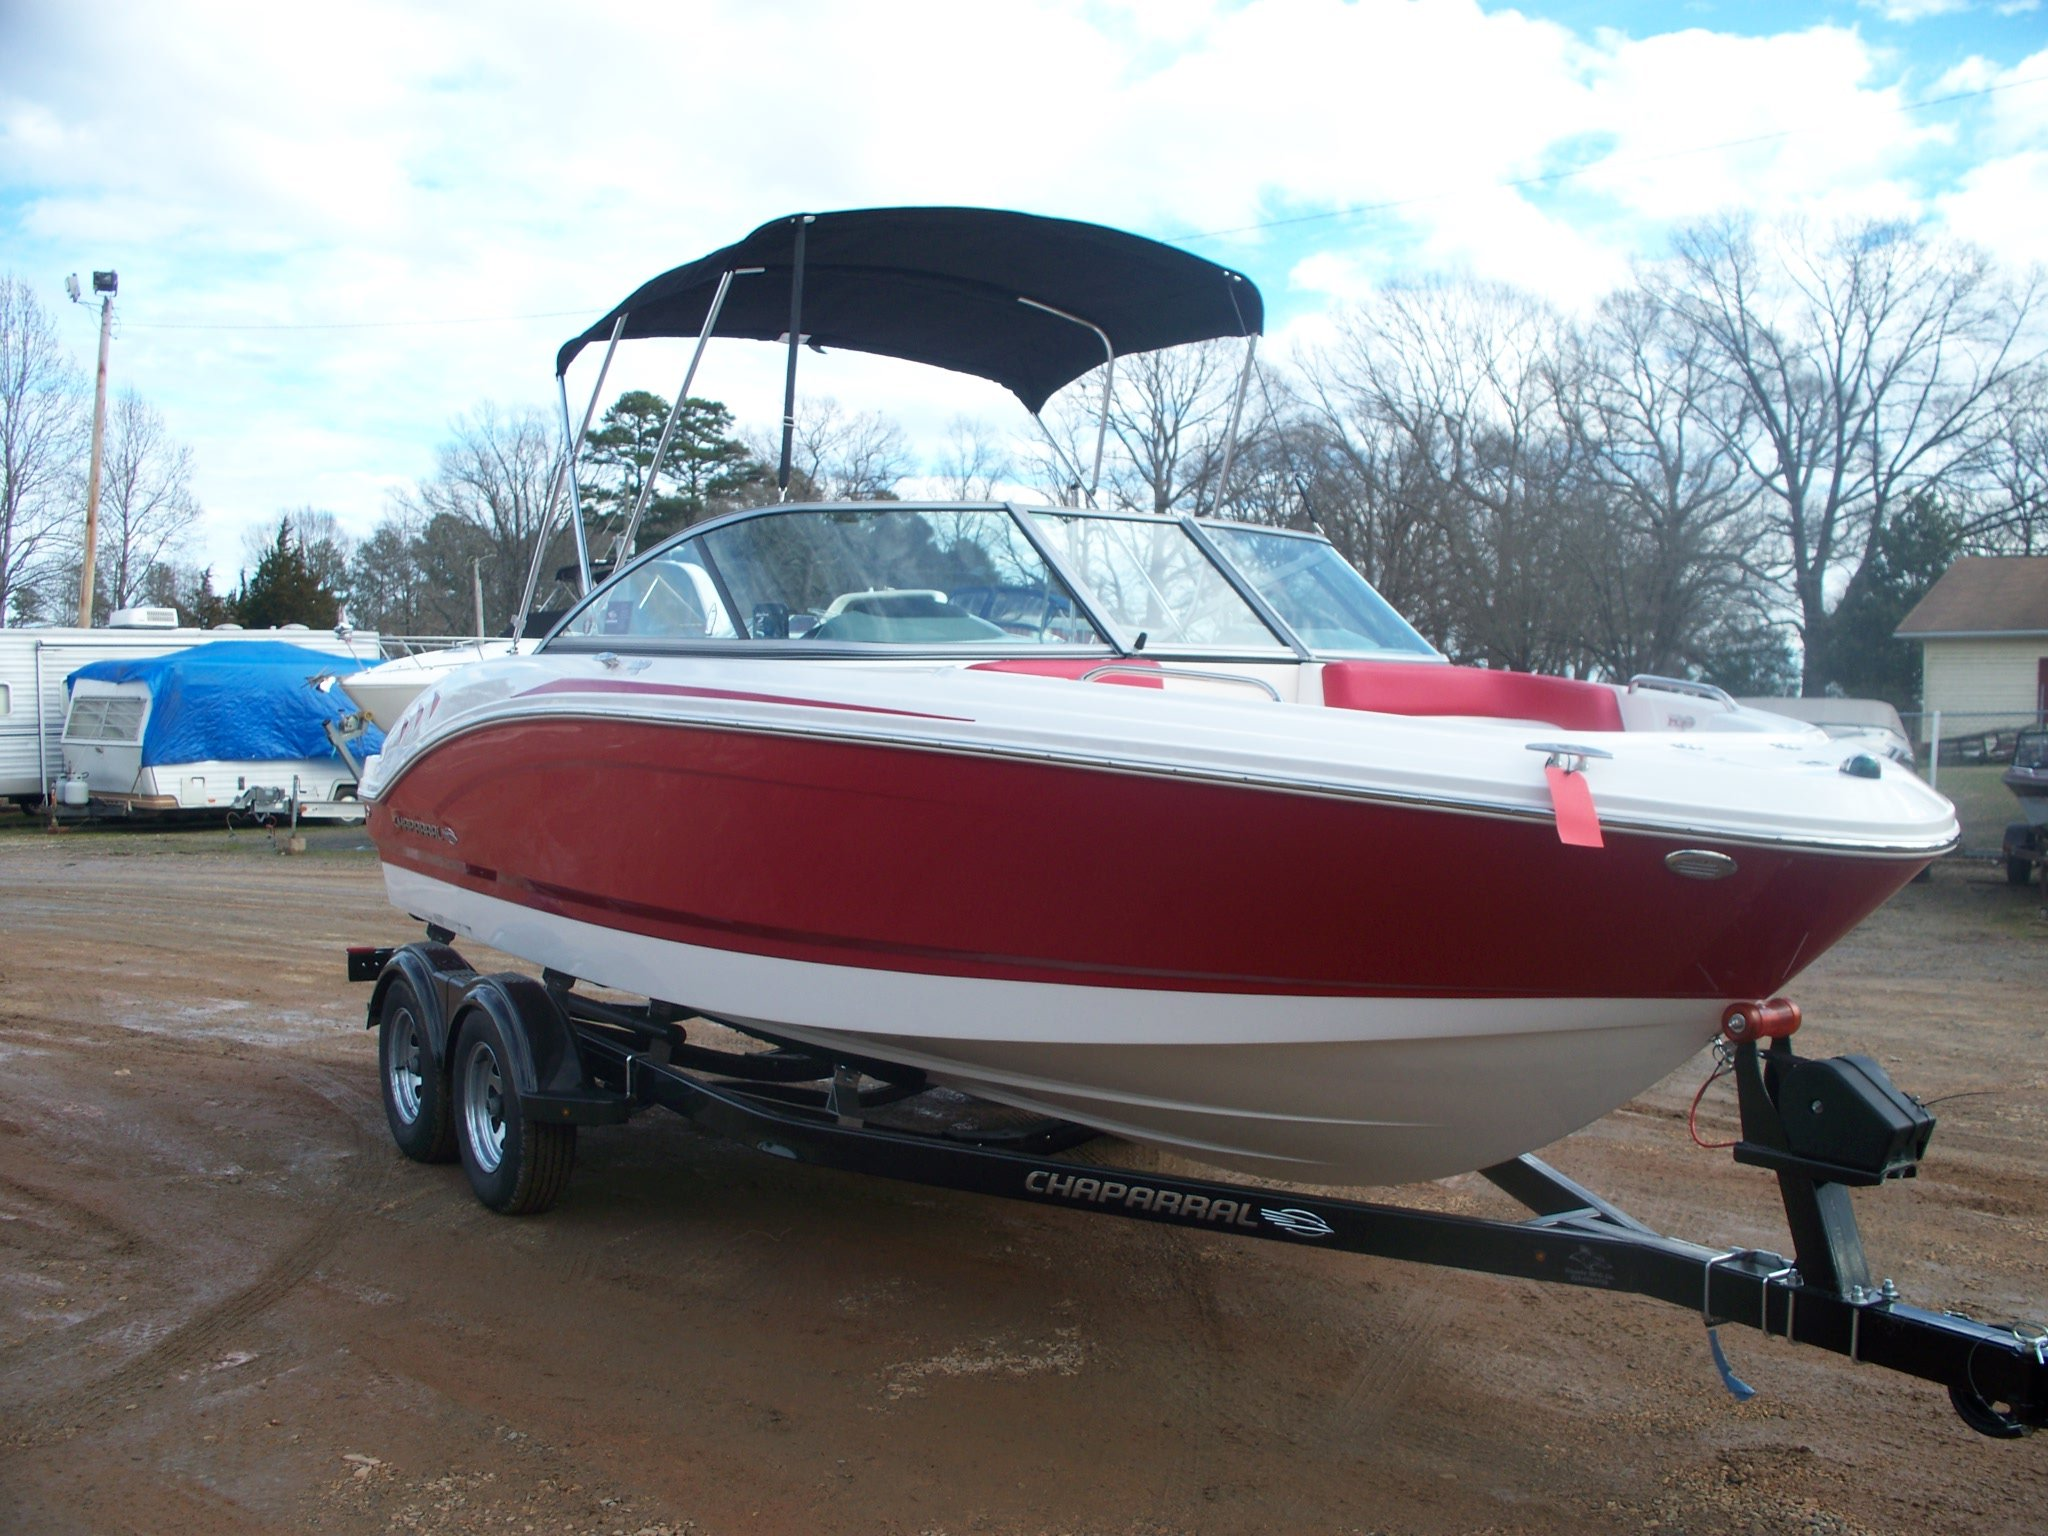 Boat Repair Wake Forest Nc Boat Storage Raleigh Nc